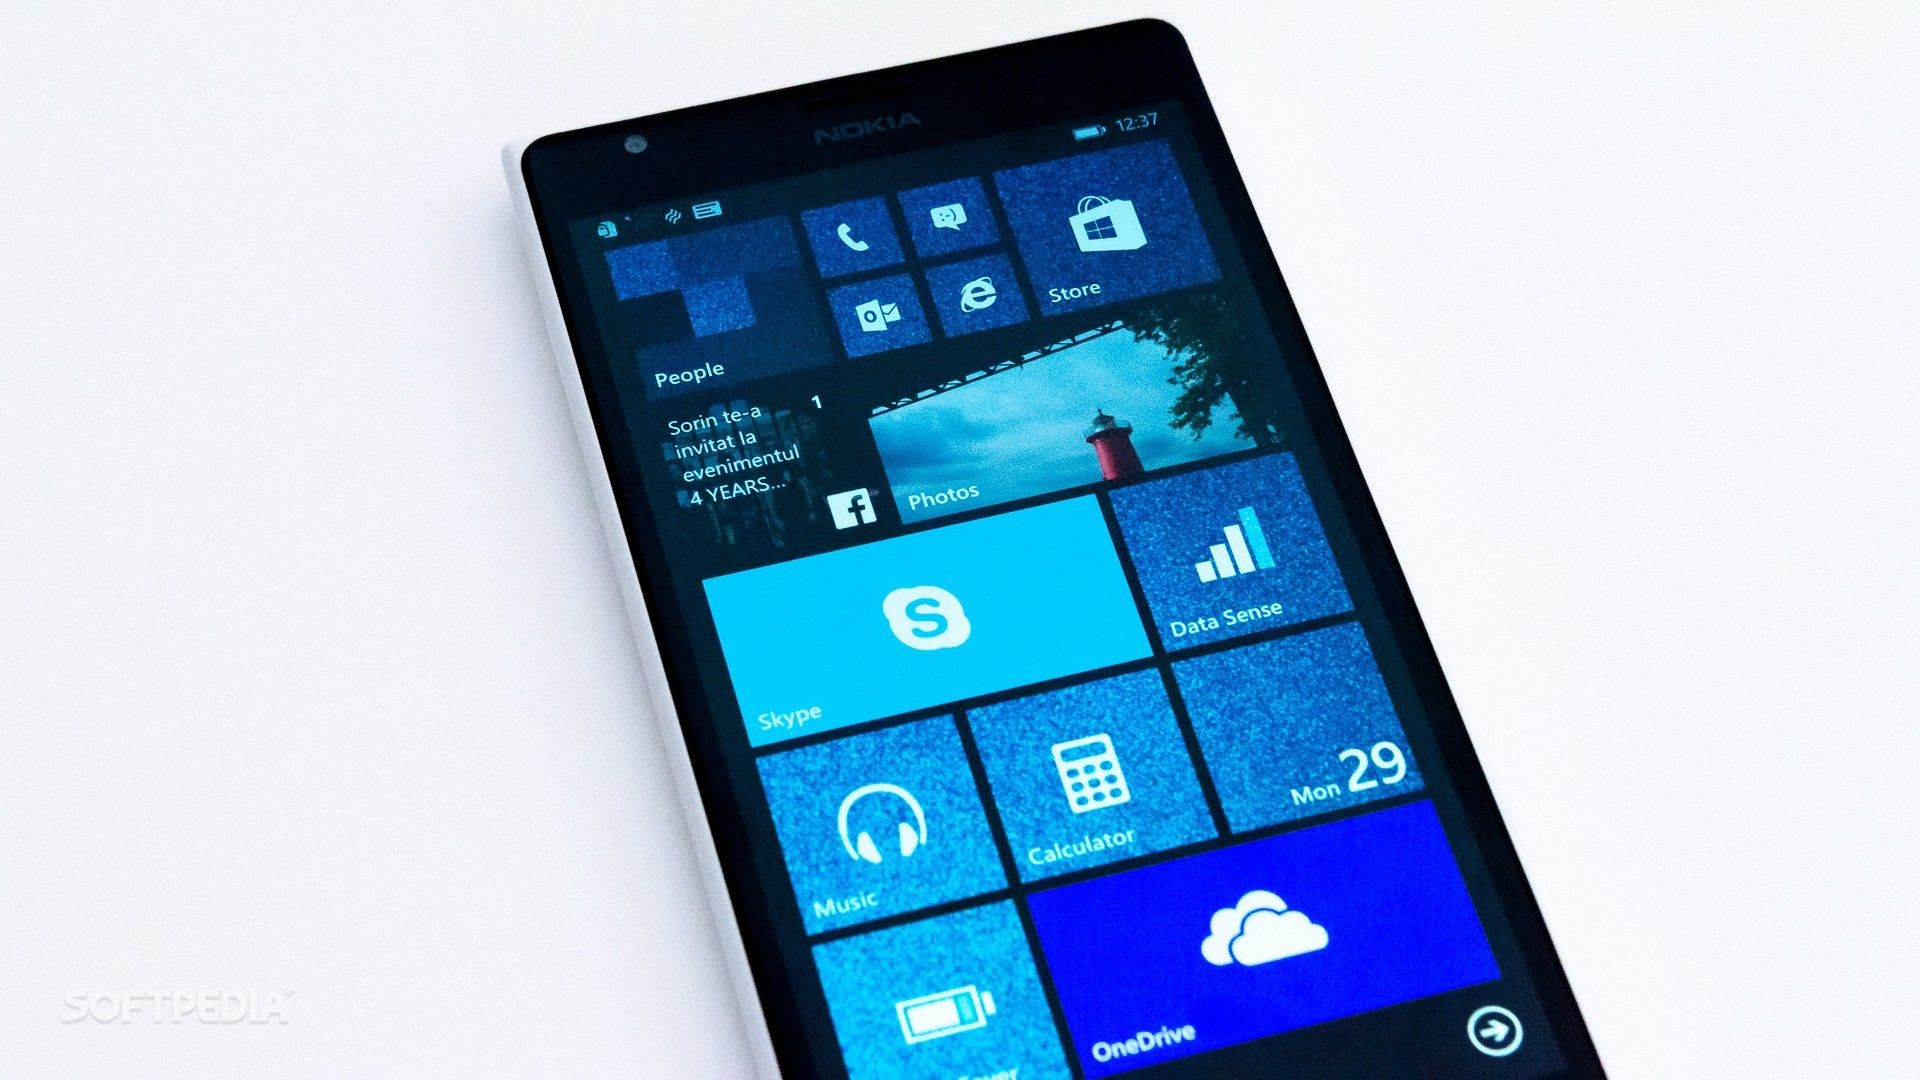 Windows Phone 8.1 device